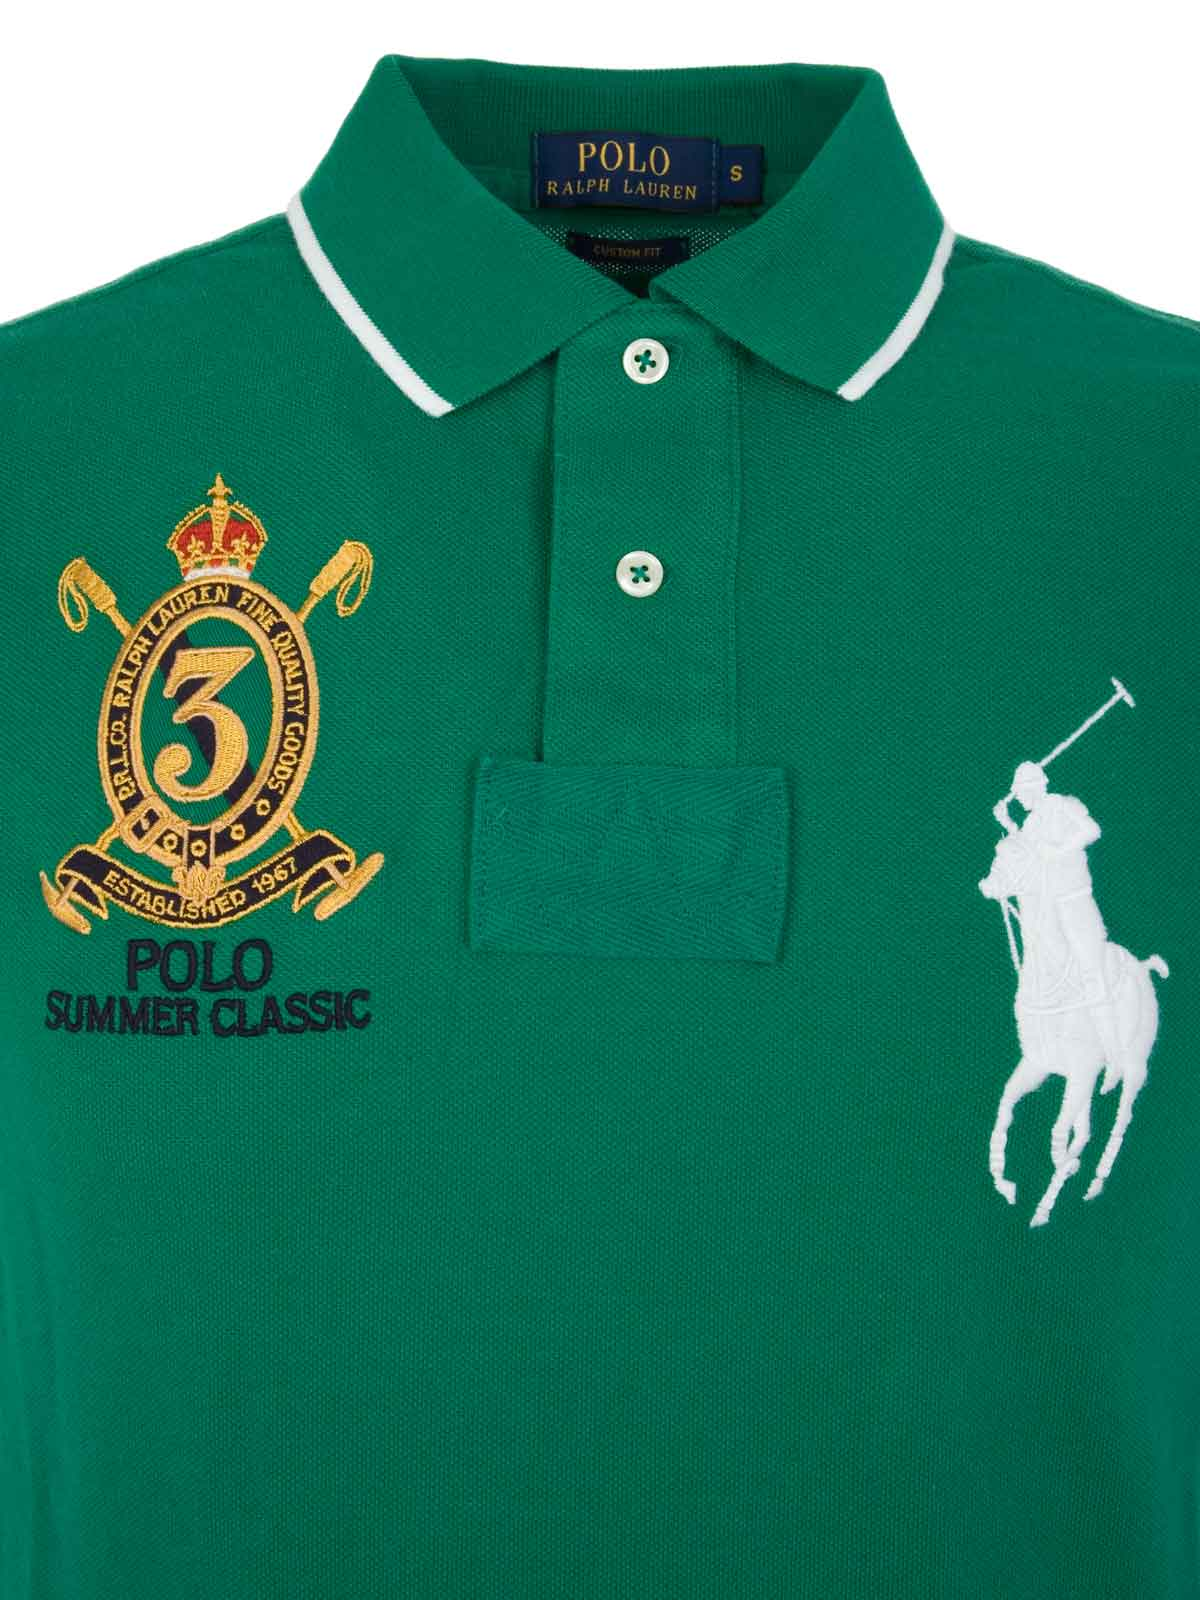 Polo Ralph Lauren Summer Classic Polo Shirt A3642  42be30219aa